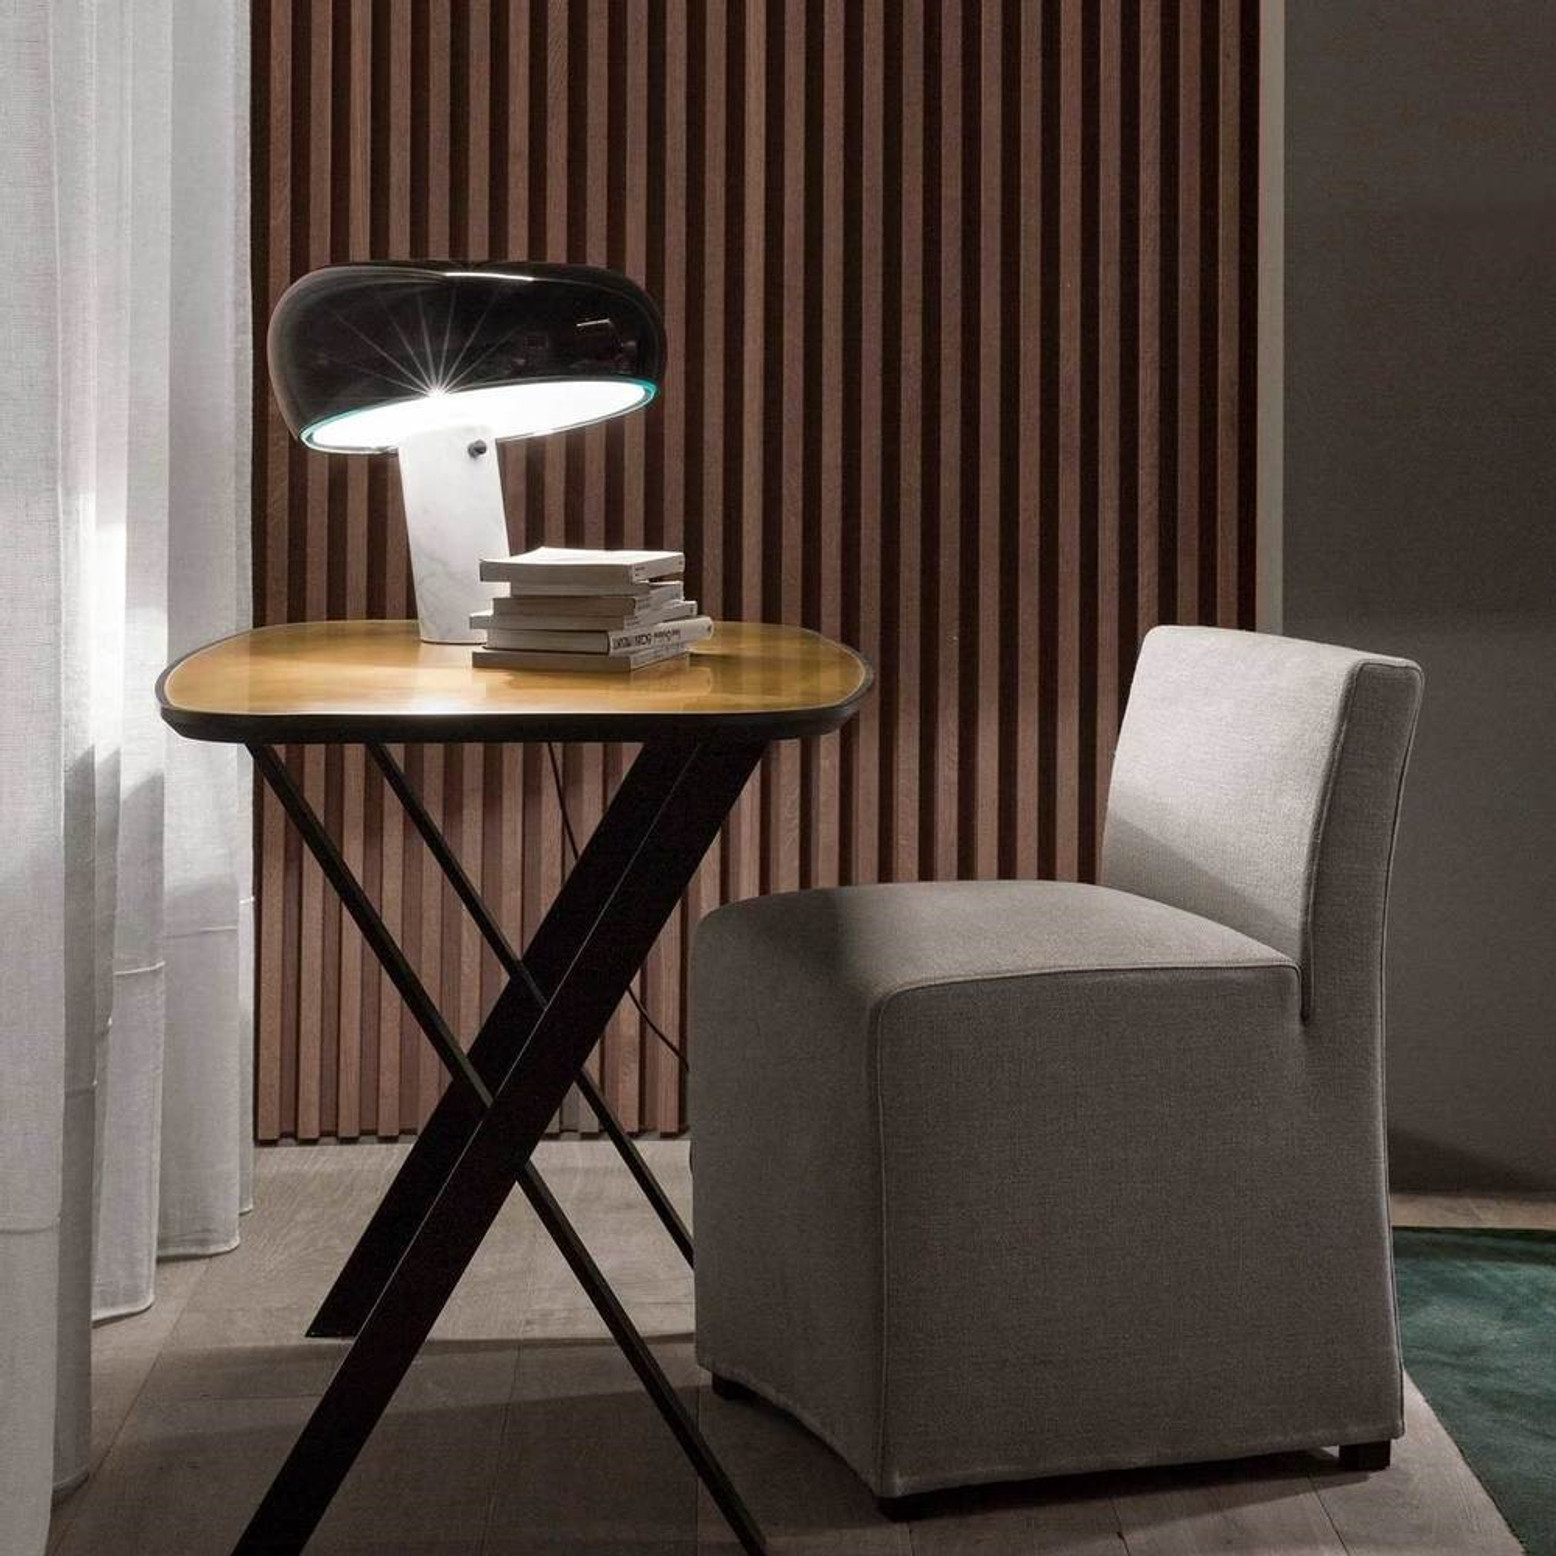 Give Your Home a Makeover with These Classic Table Lamps